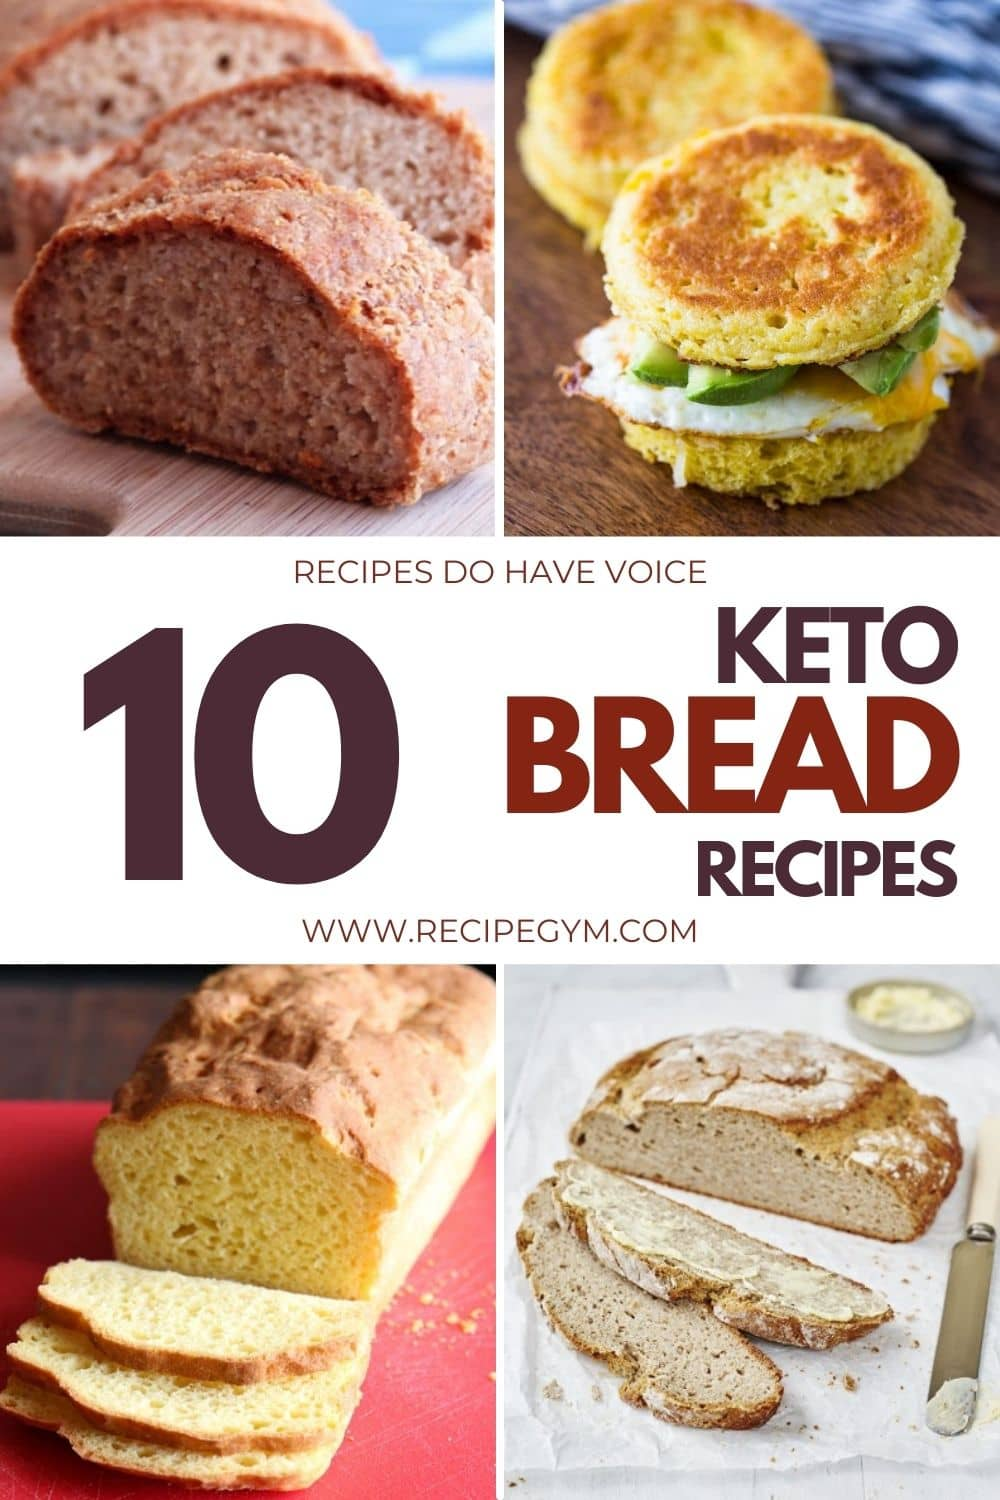 10 delicious keto bread recipes for sandwiches and toast | faith fitness food